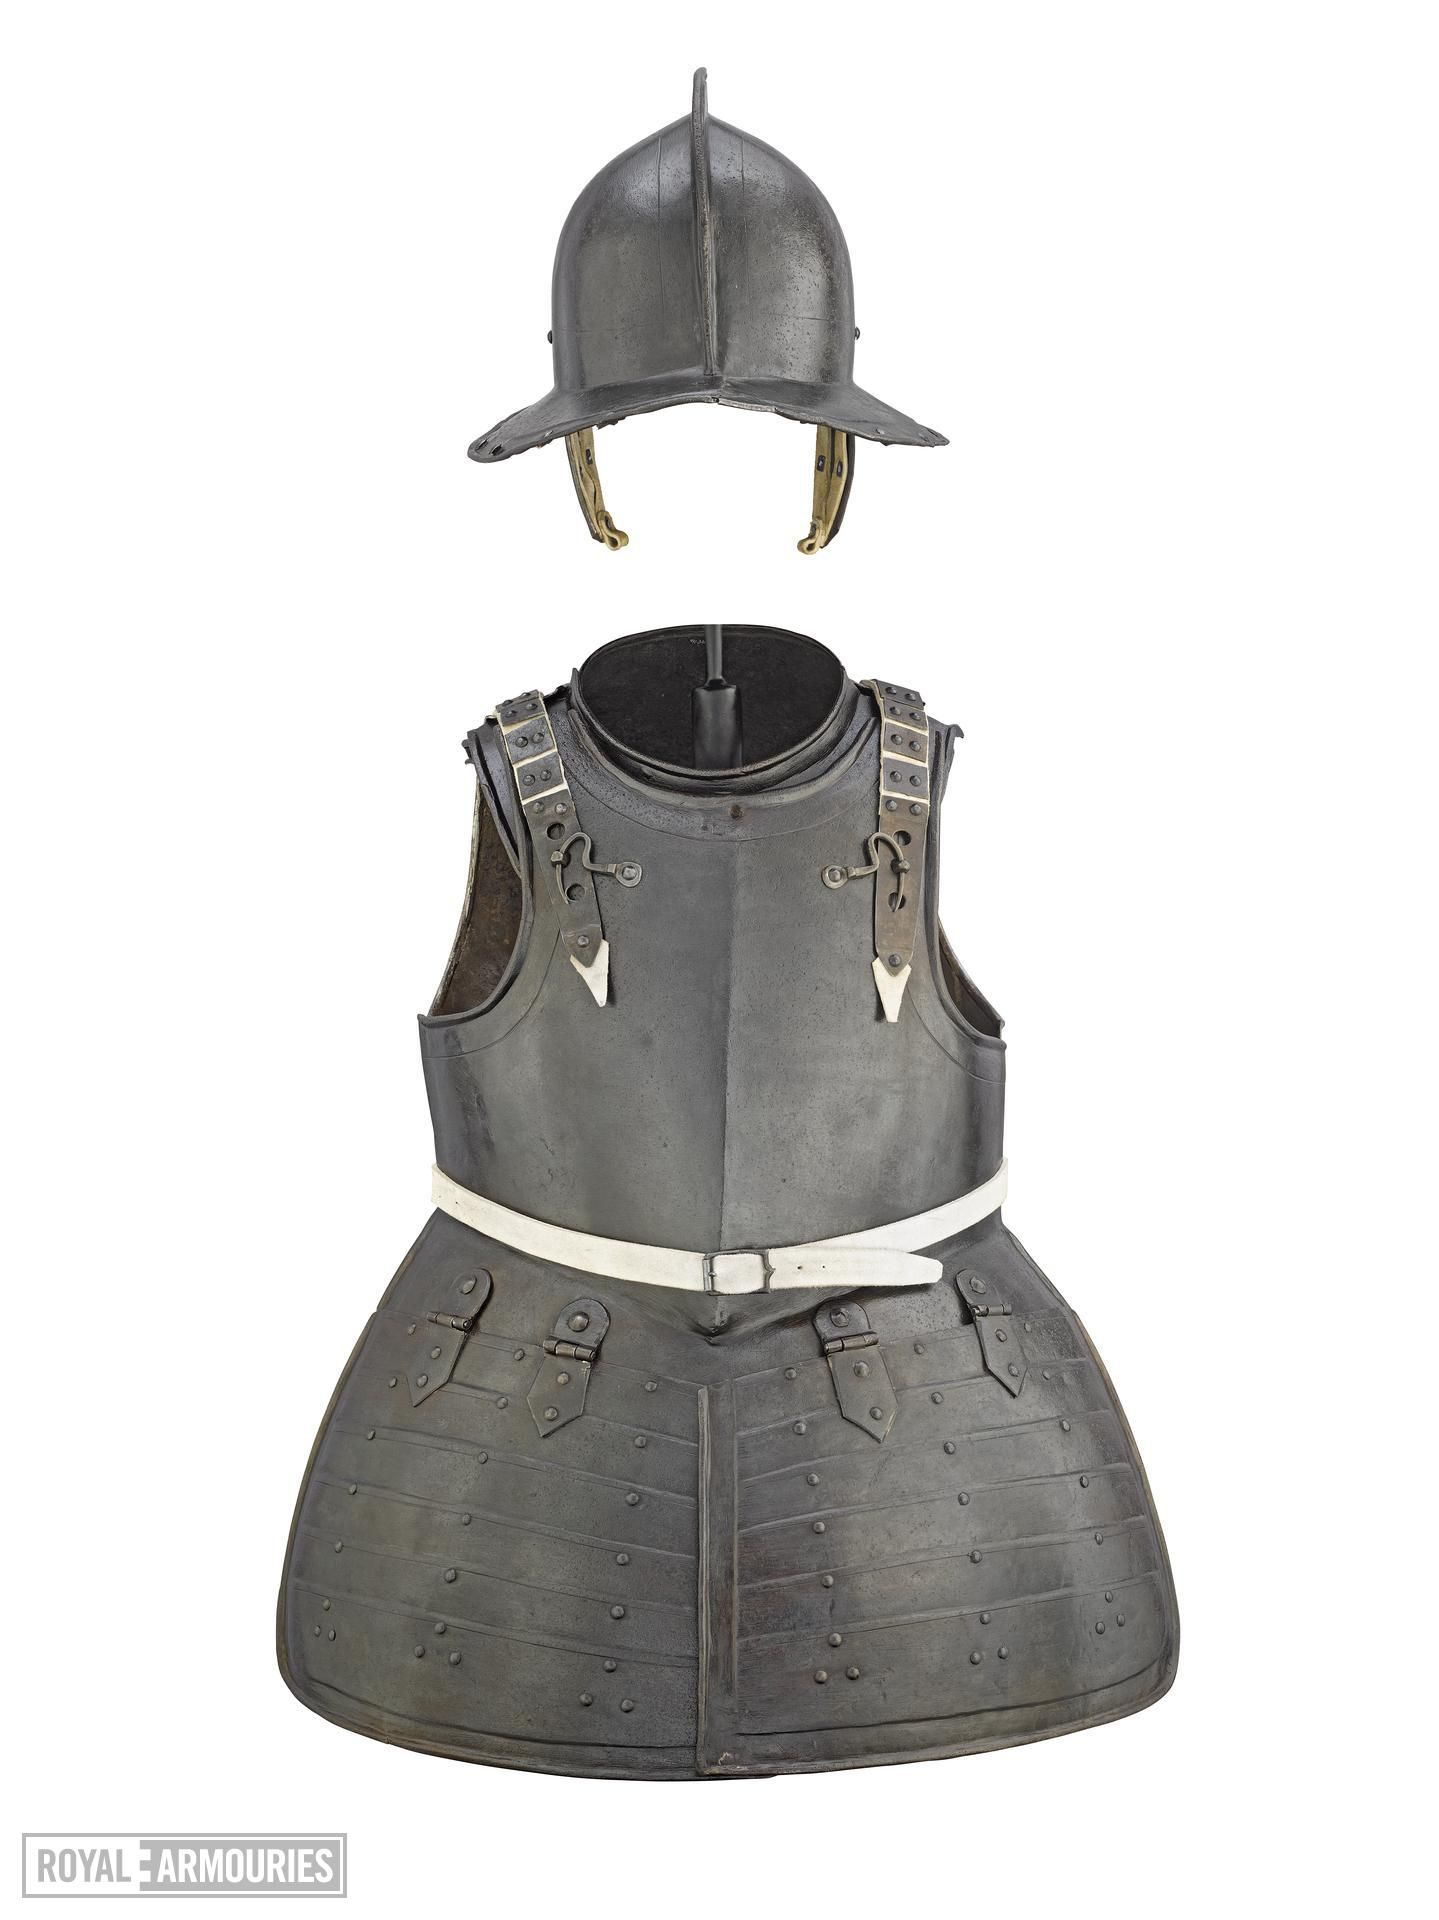 Pikeman's armour. Consists of: helmet, gorget, breastplate, tassets and backplate. II.365 A-E